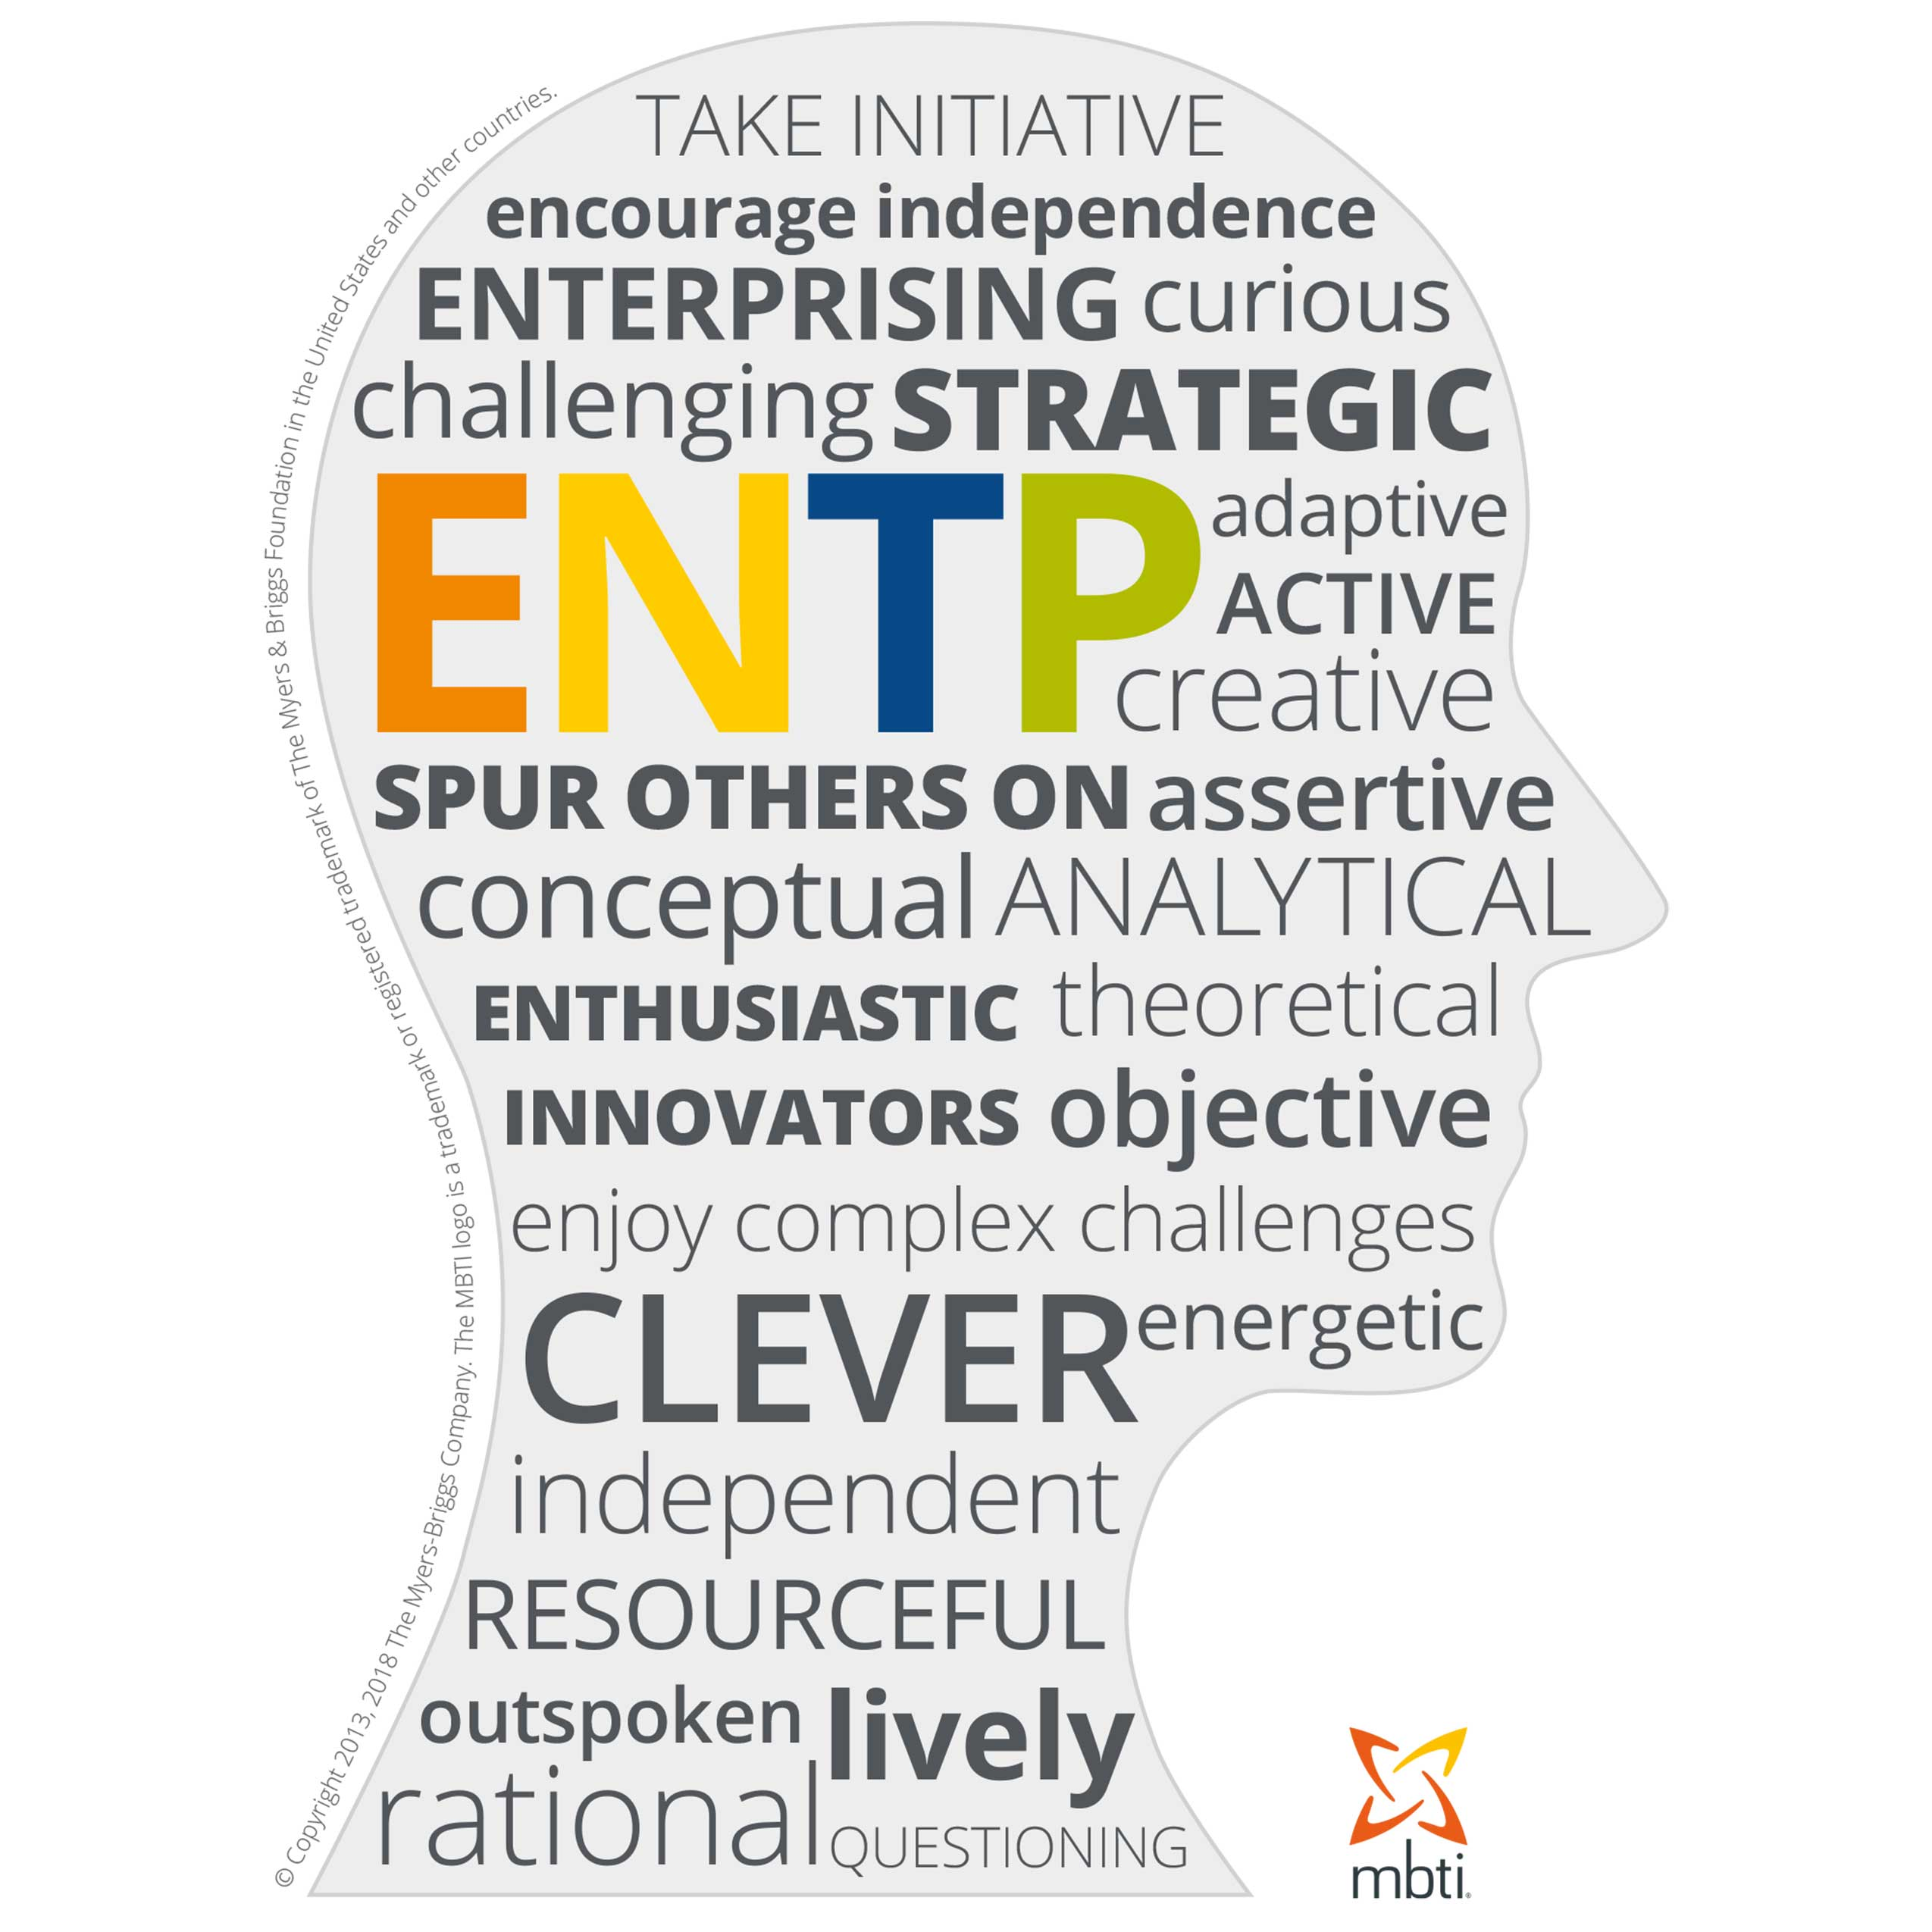 Typical characteristics of an ENTP